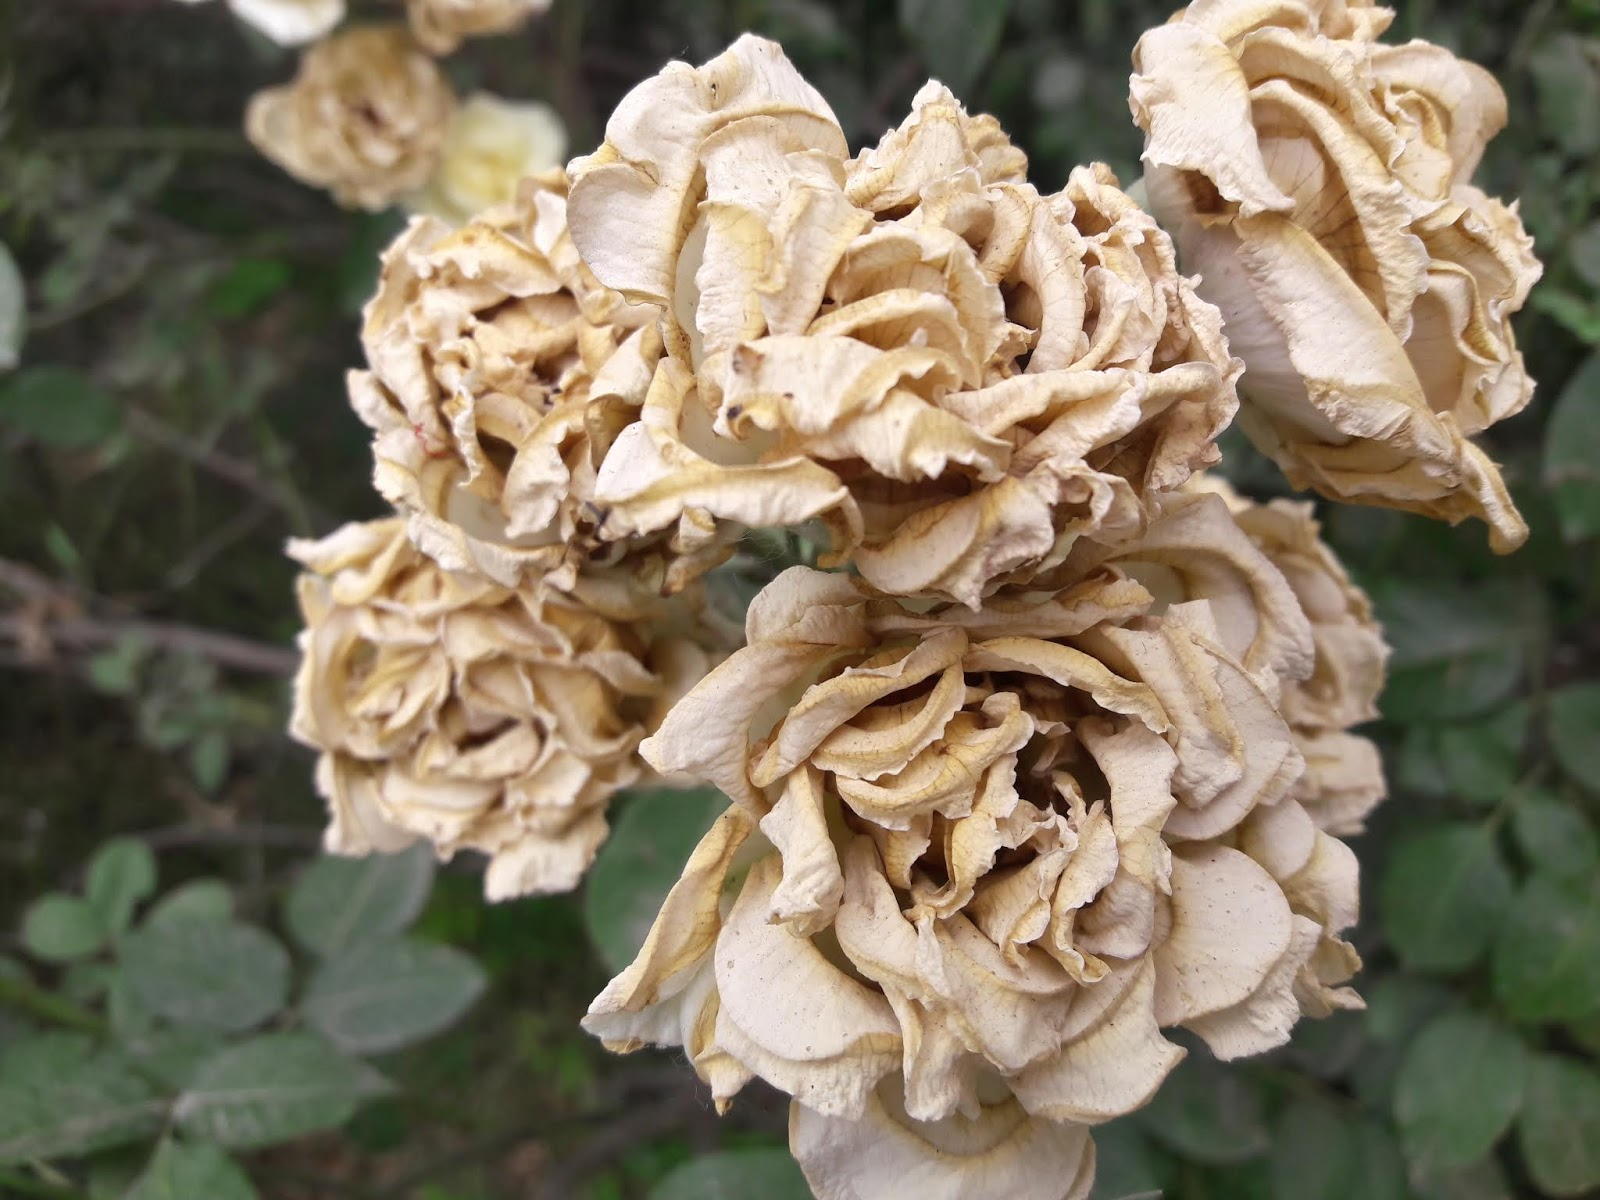 Nature clicks click by niaxi dead white roses dead white roses mightylinksfo